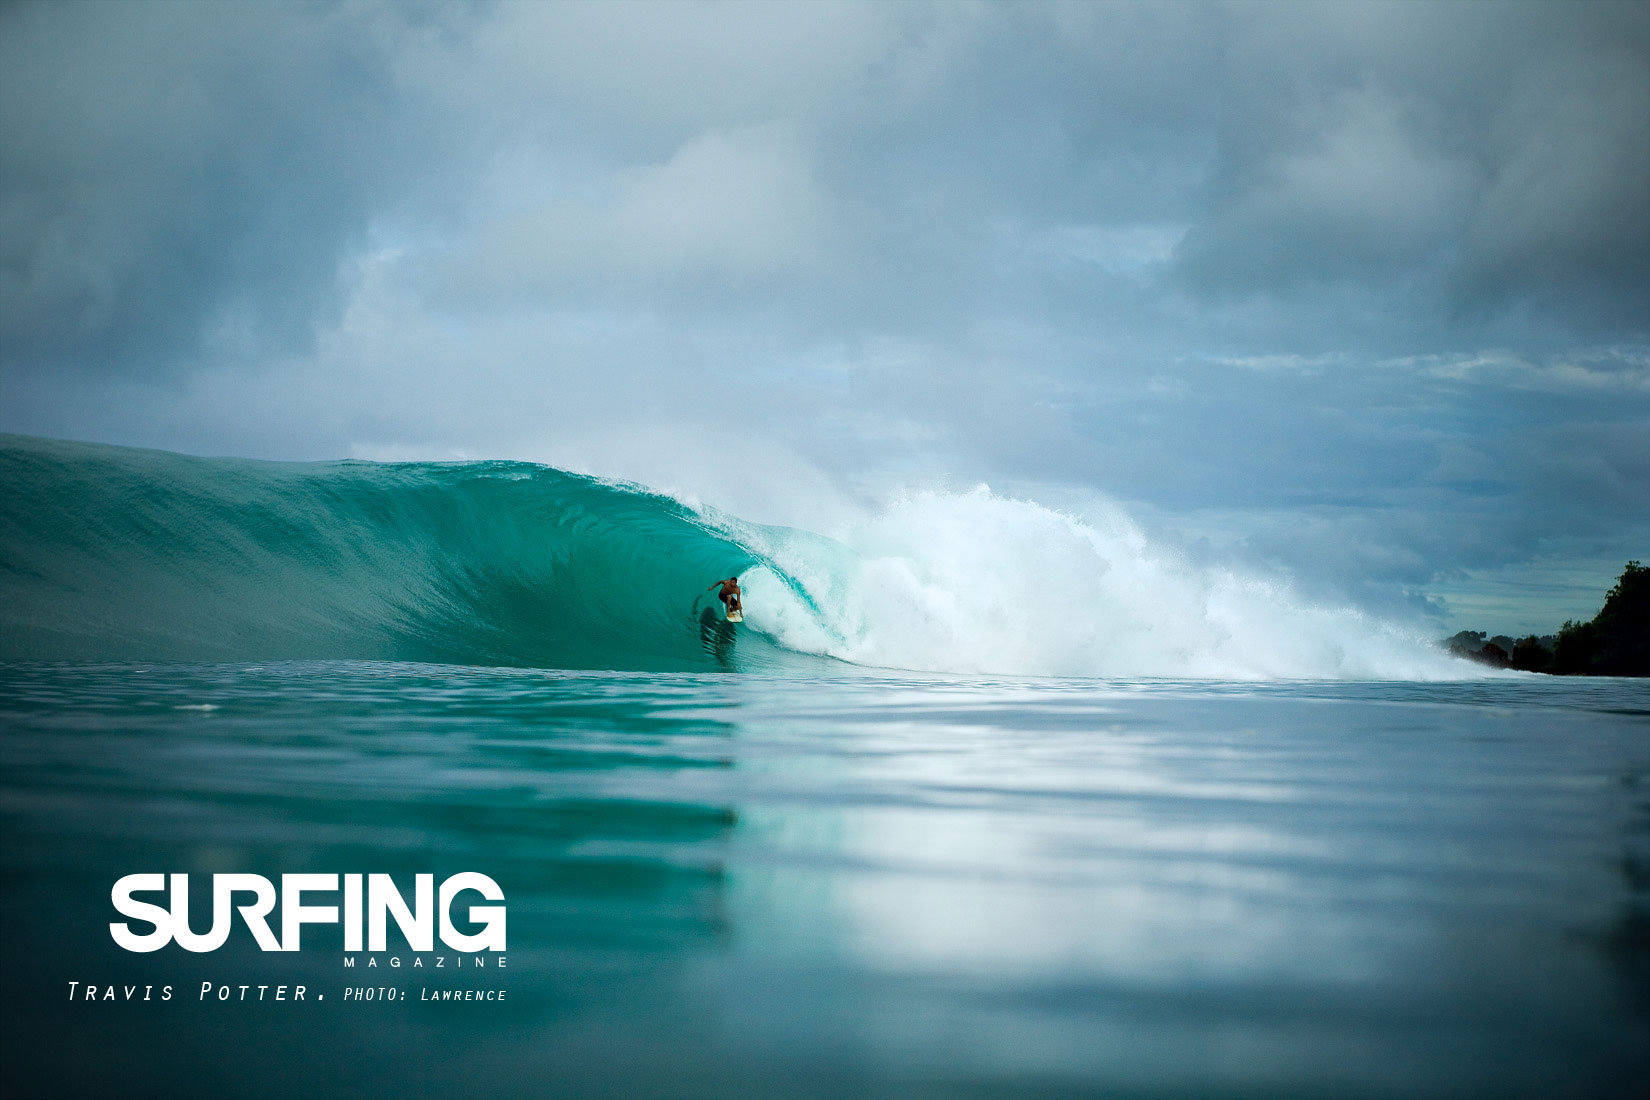 surfing surf wallpaper travis potter lawrence 610x406 Surfing Magazine 1650x1100